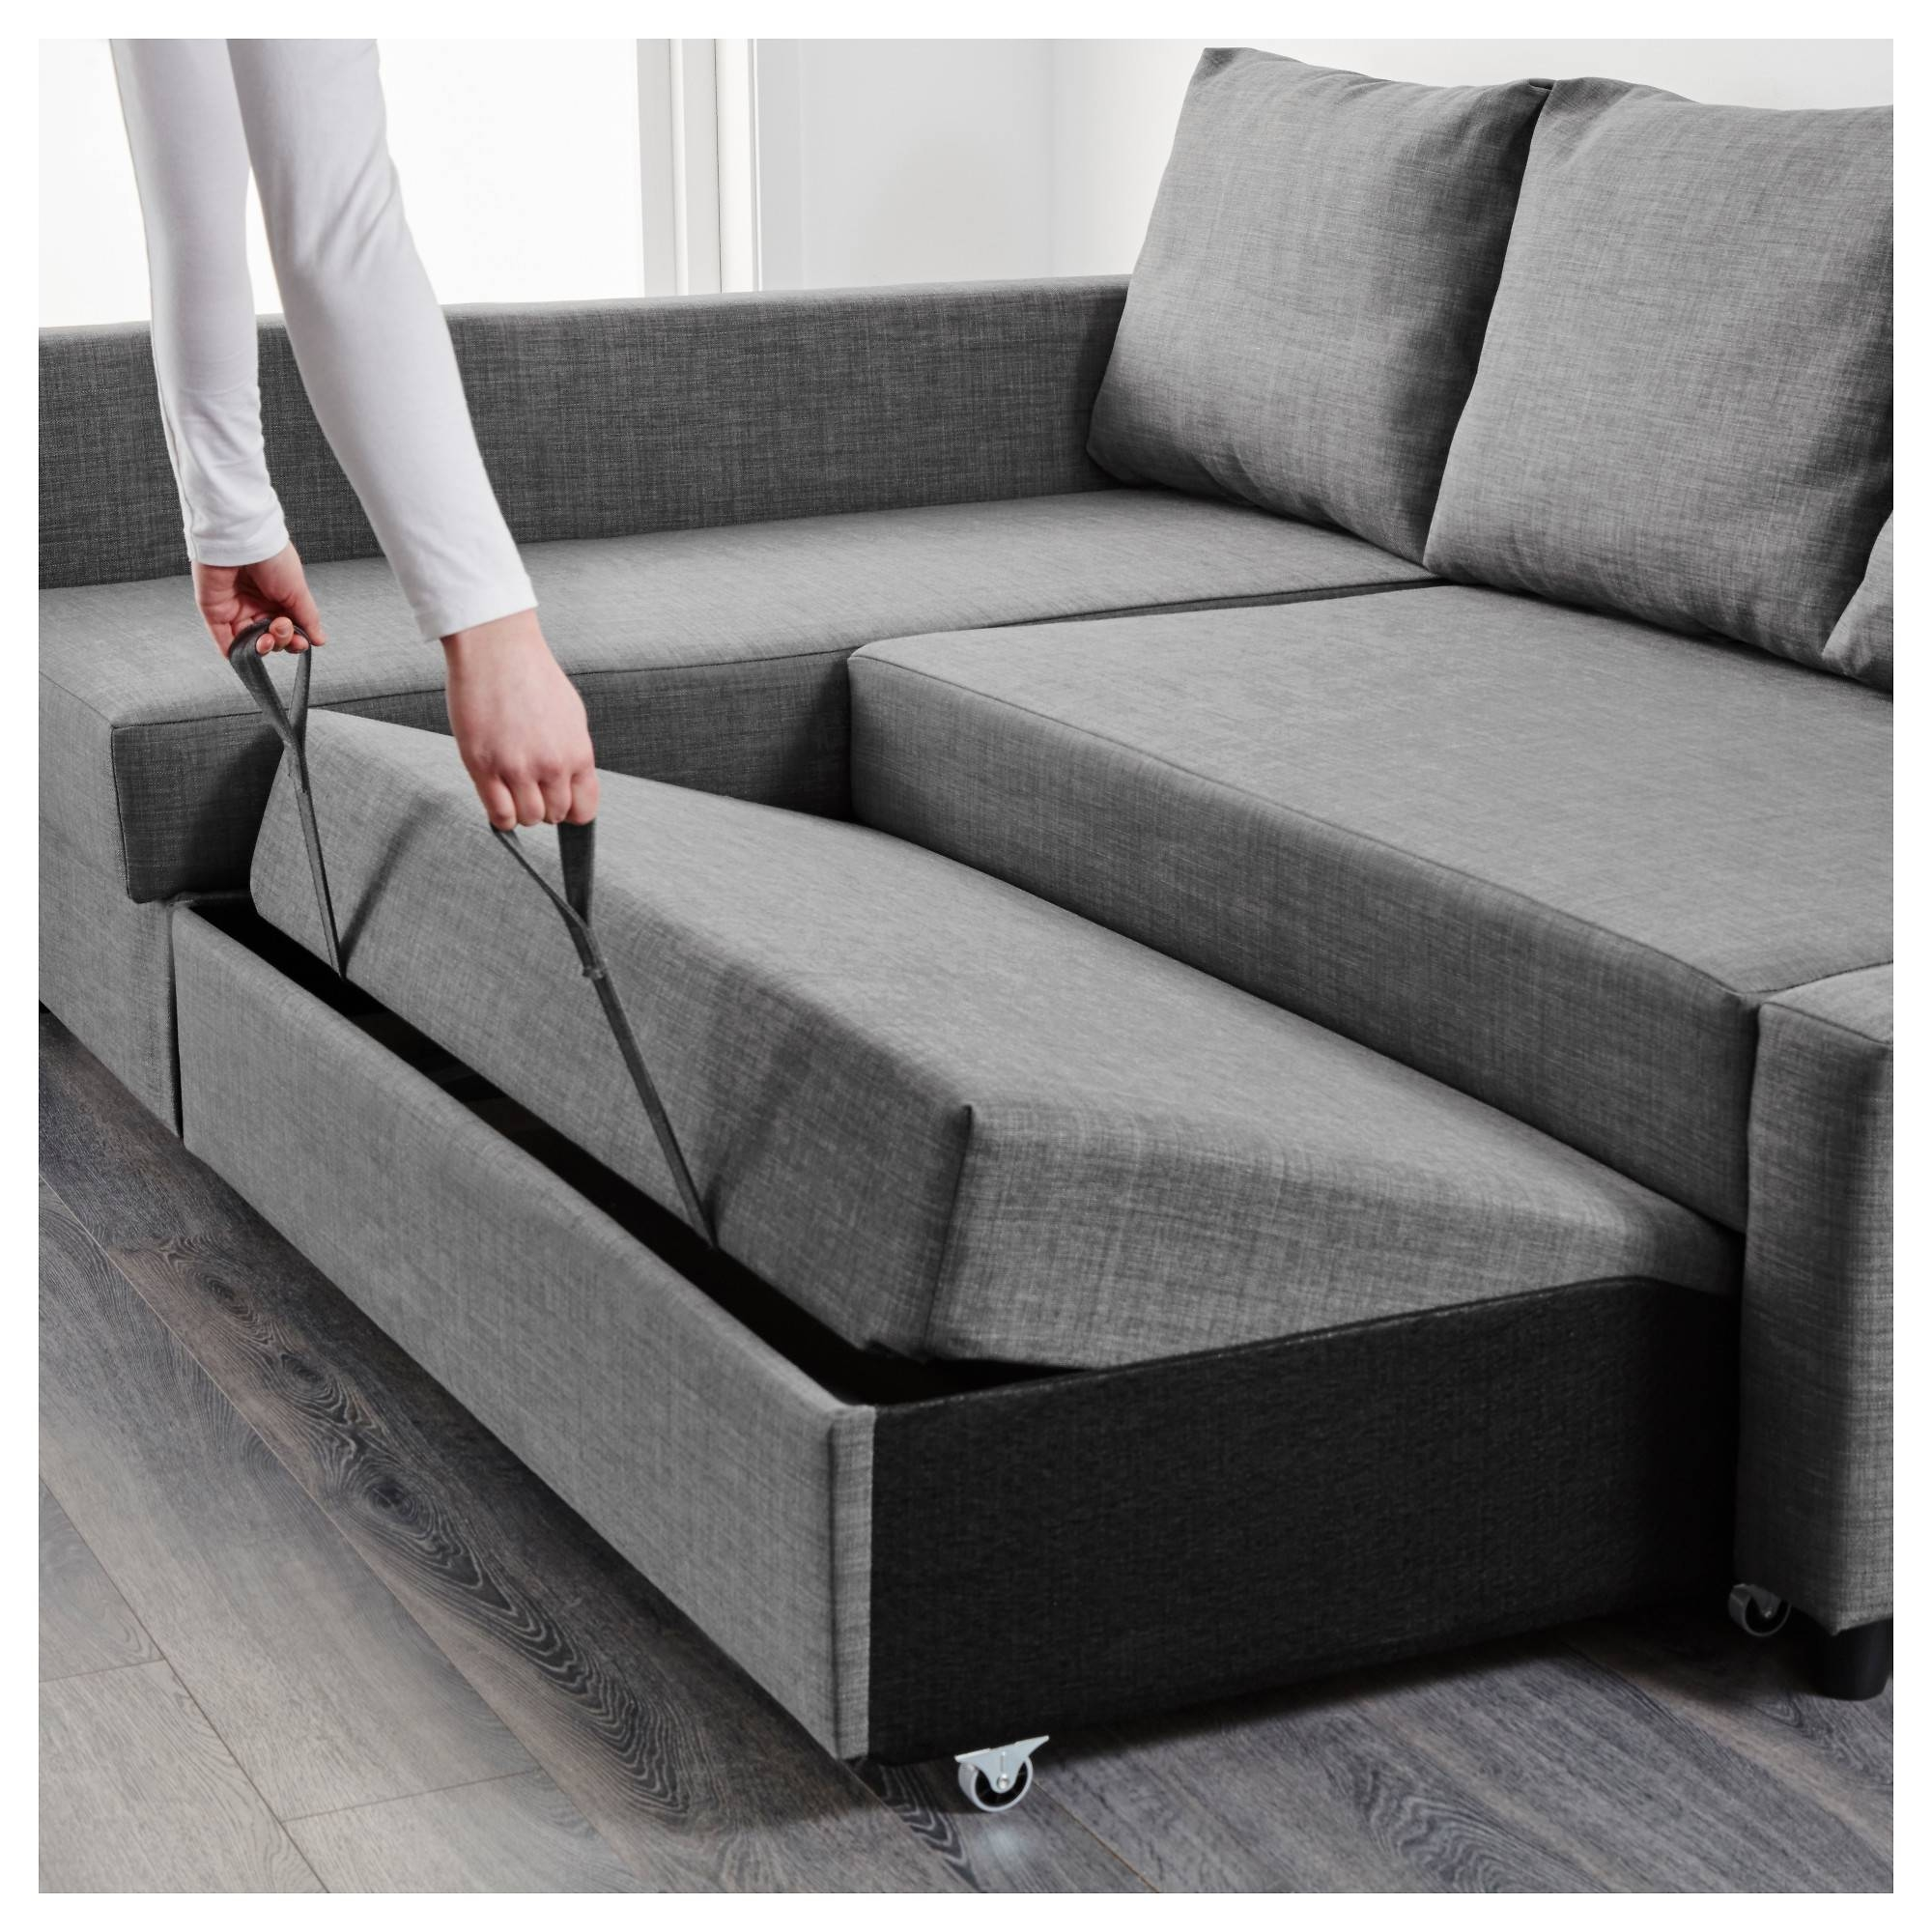 Friheten Corner Sofa-Bed With Storage Skiftebo Dark Grey - Ikea with Ikea Corner Sofa Bed With Storage (Image 14 of 25)